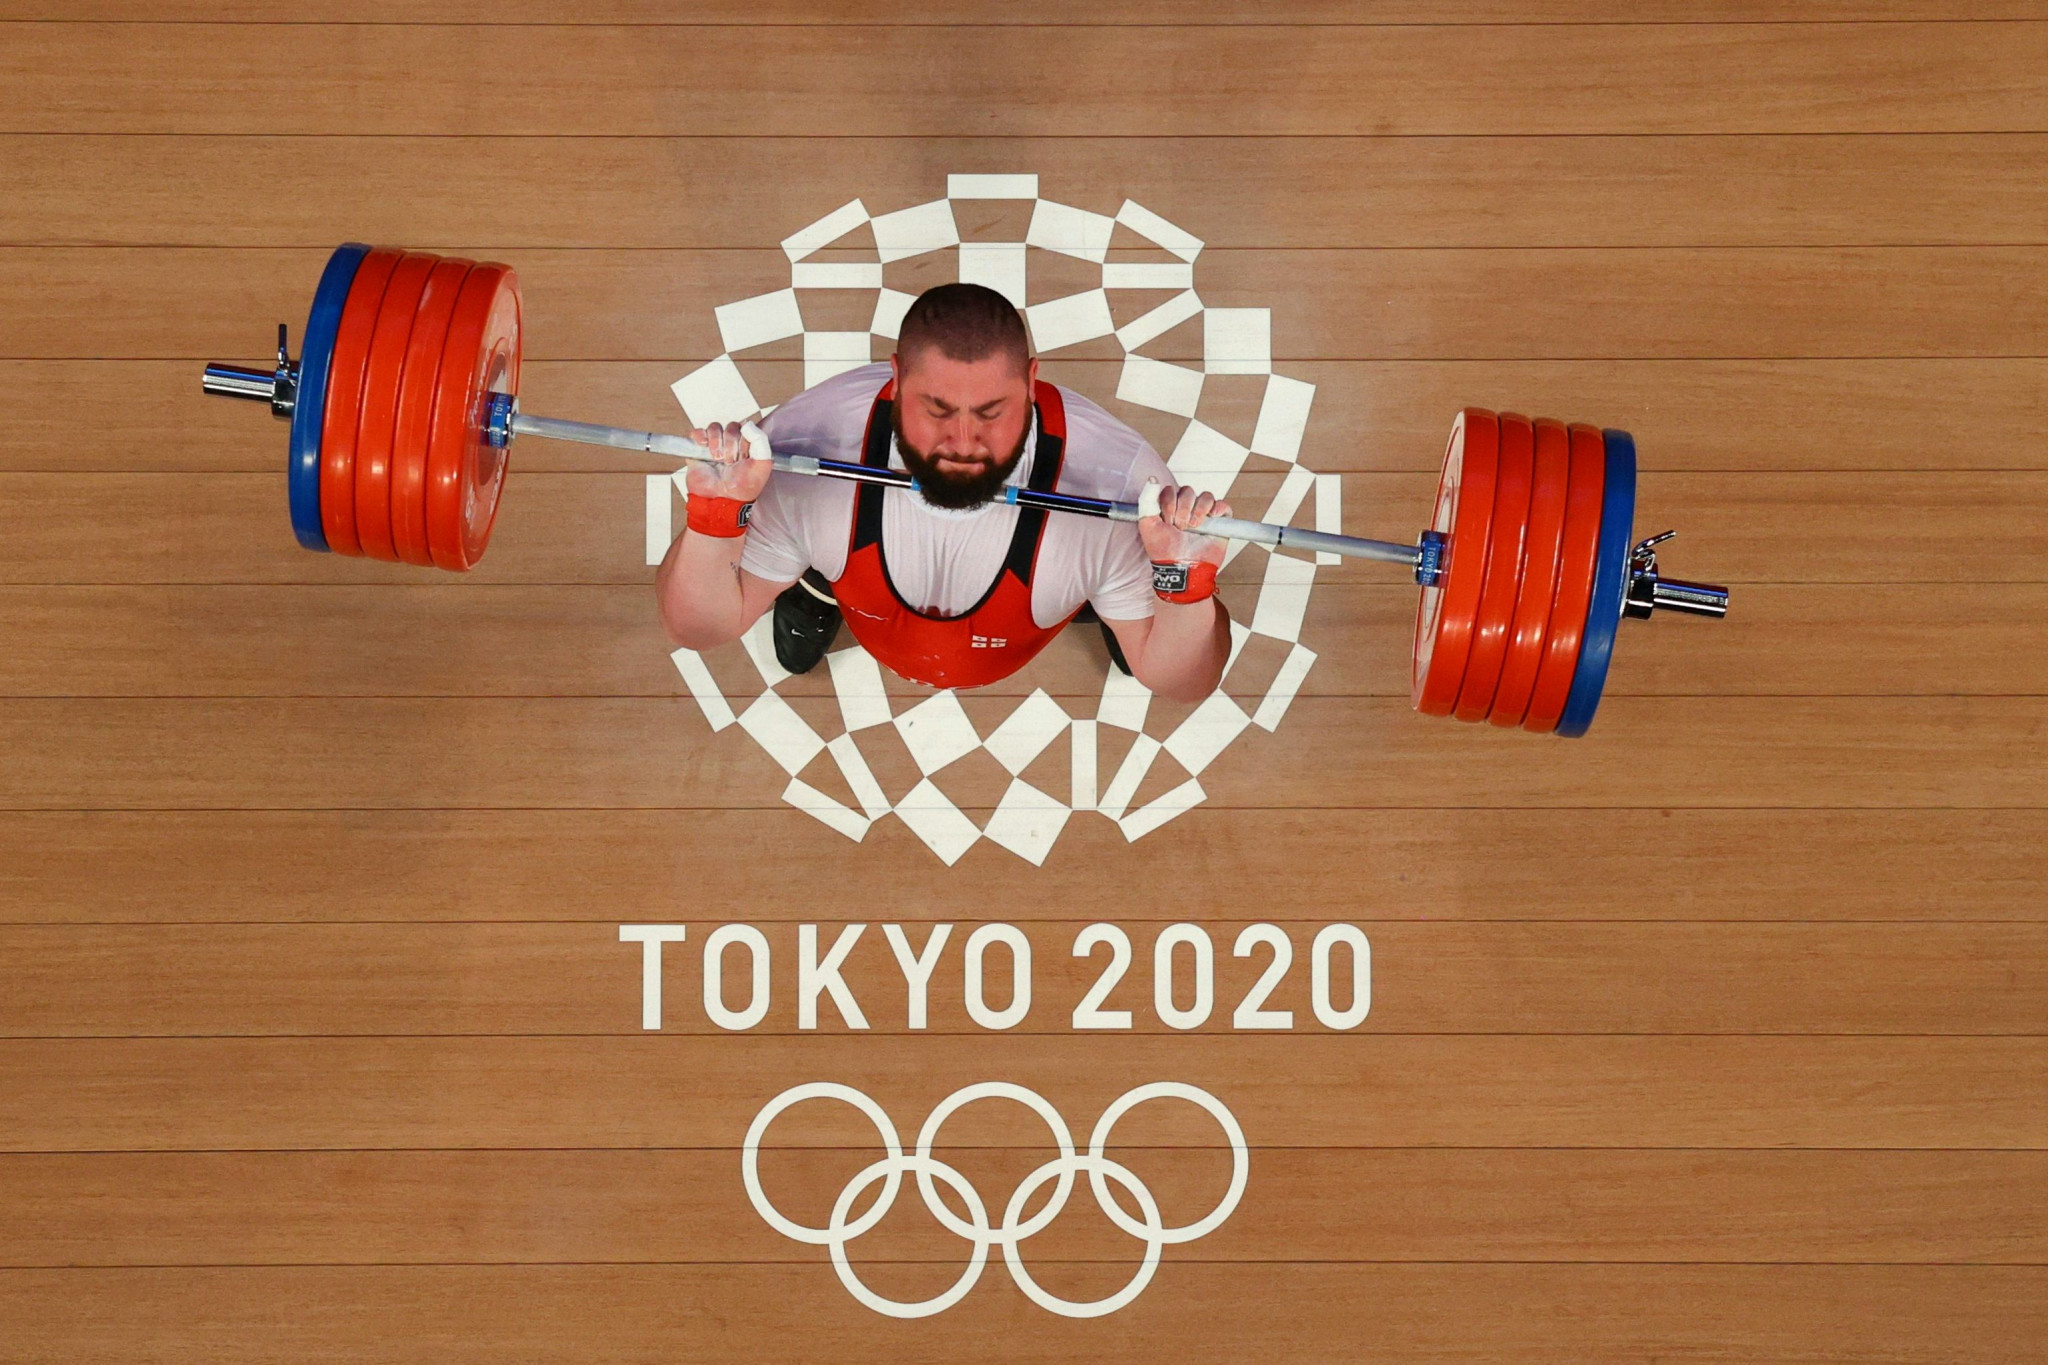 Lasha Talakhadze from Georgia ended the Tokyo 2020 weightlifting programme in stunning fashion, breaking all three of his own super-heavyweight world records en route to a gold medal ©Getty Images